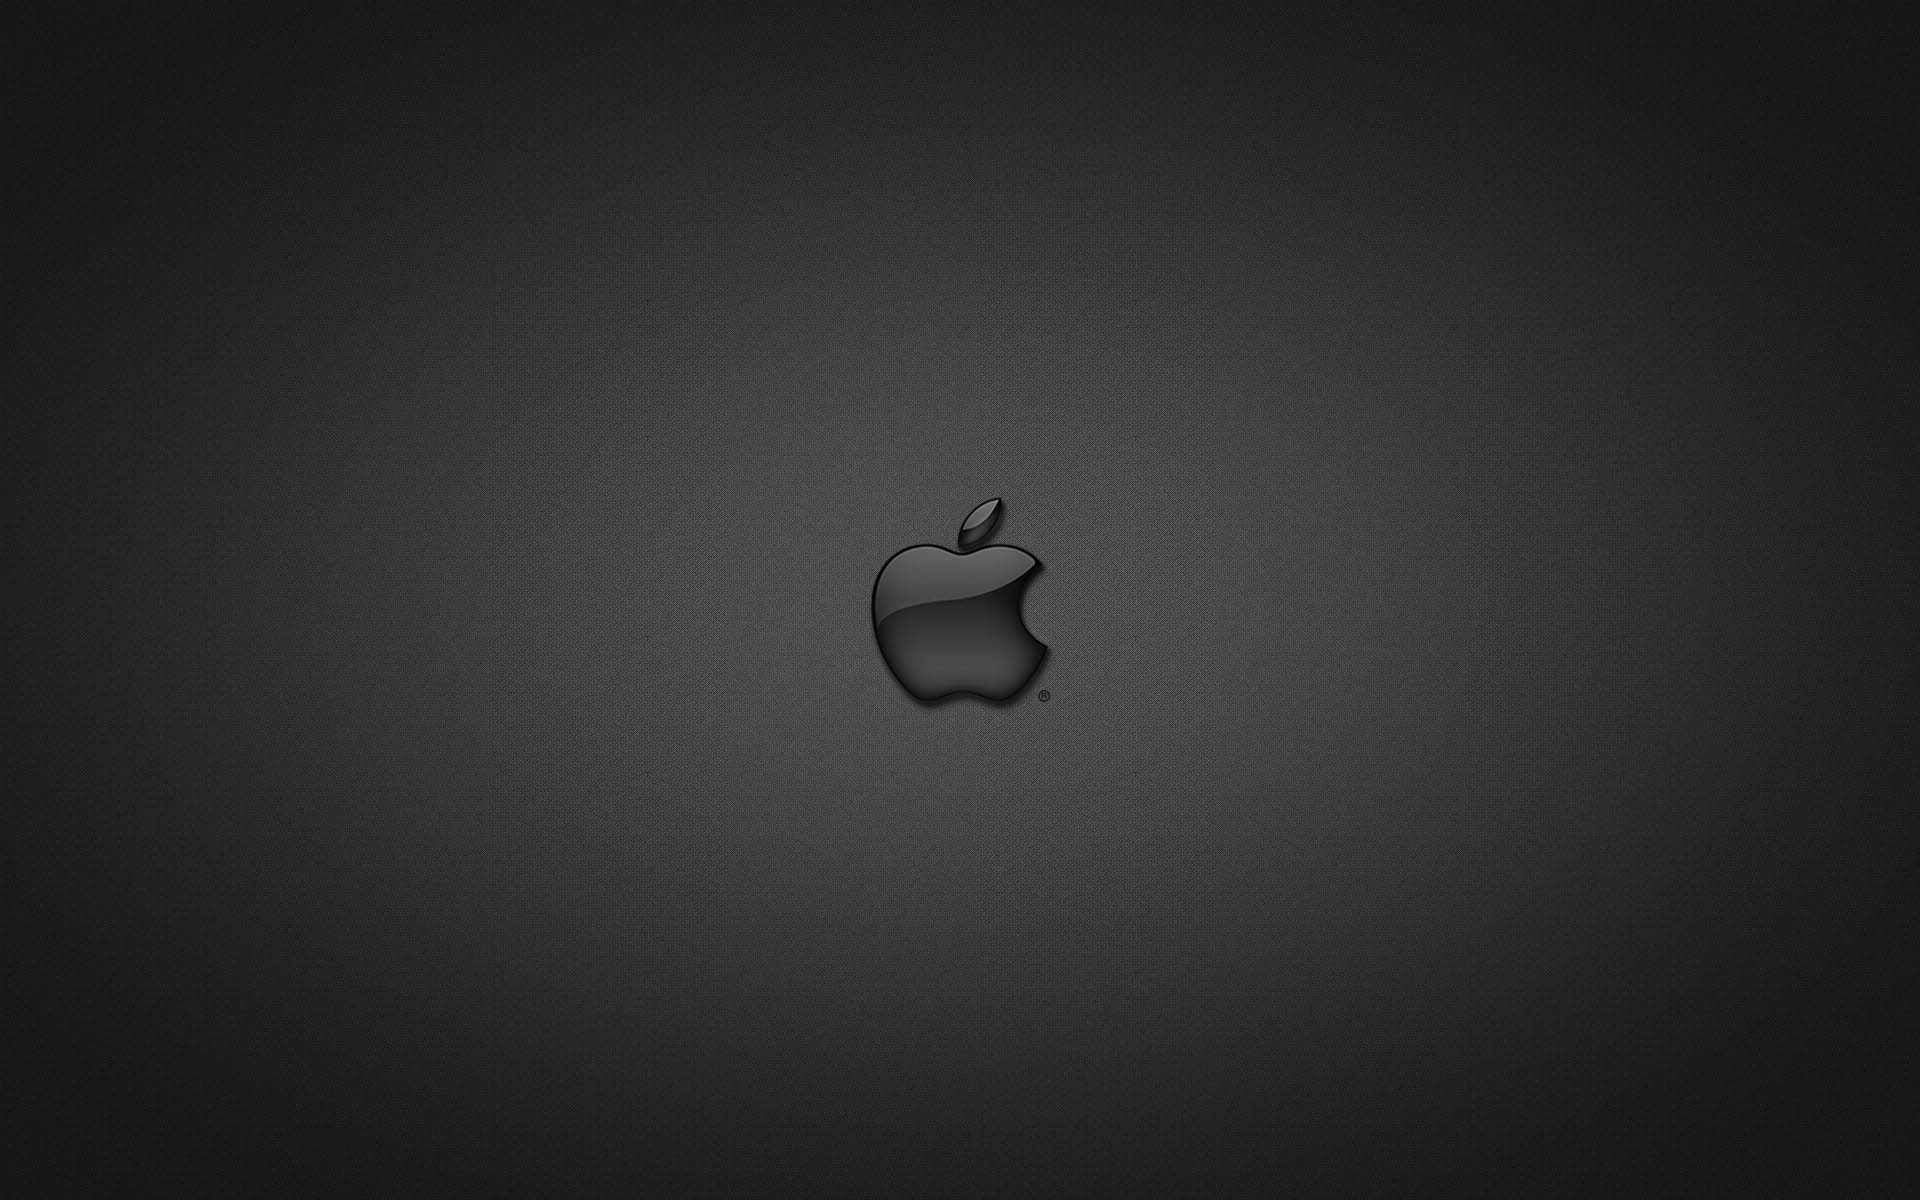 Apple Logo Wallpapers Hd A21 Hd Desktop Wallpapers 4k Hd